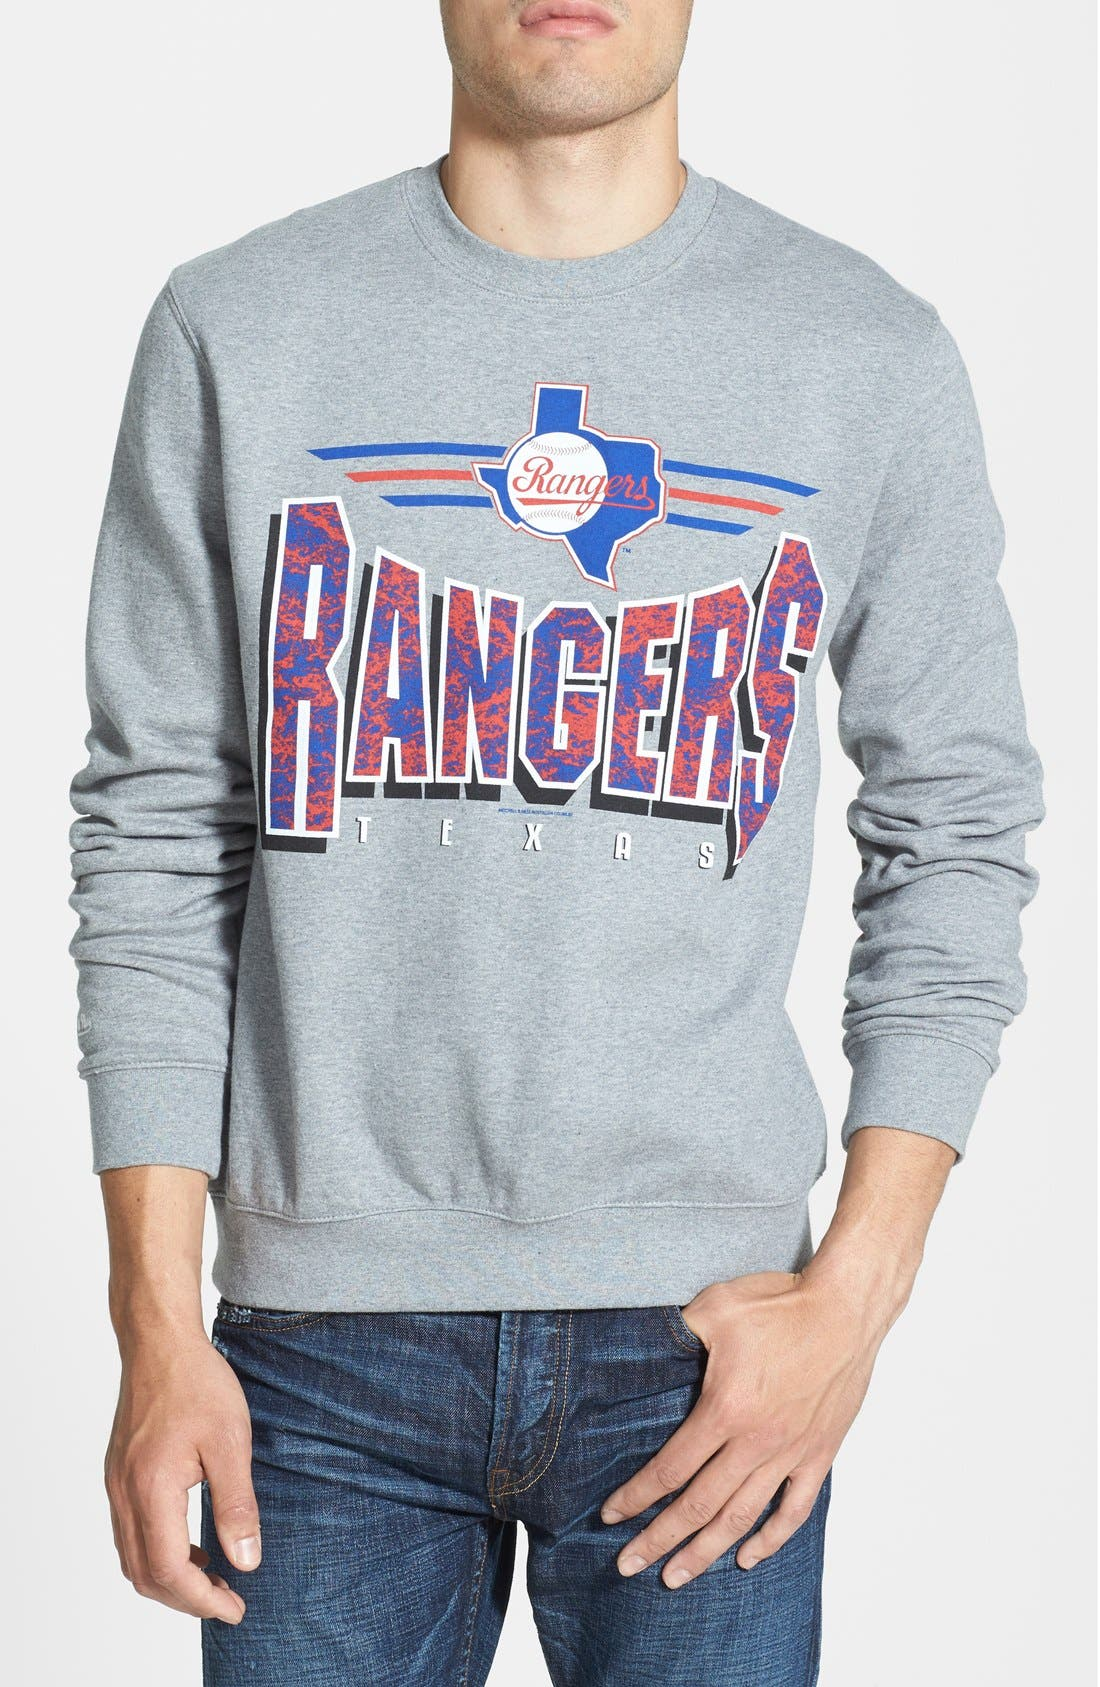 Alternate Image 1 Selected - Mitchell & Ness 'Texas Rangers' Crewneck Sweatshirt